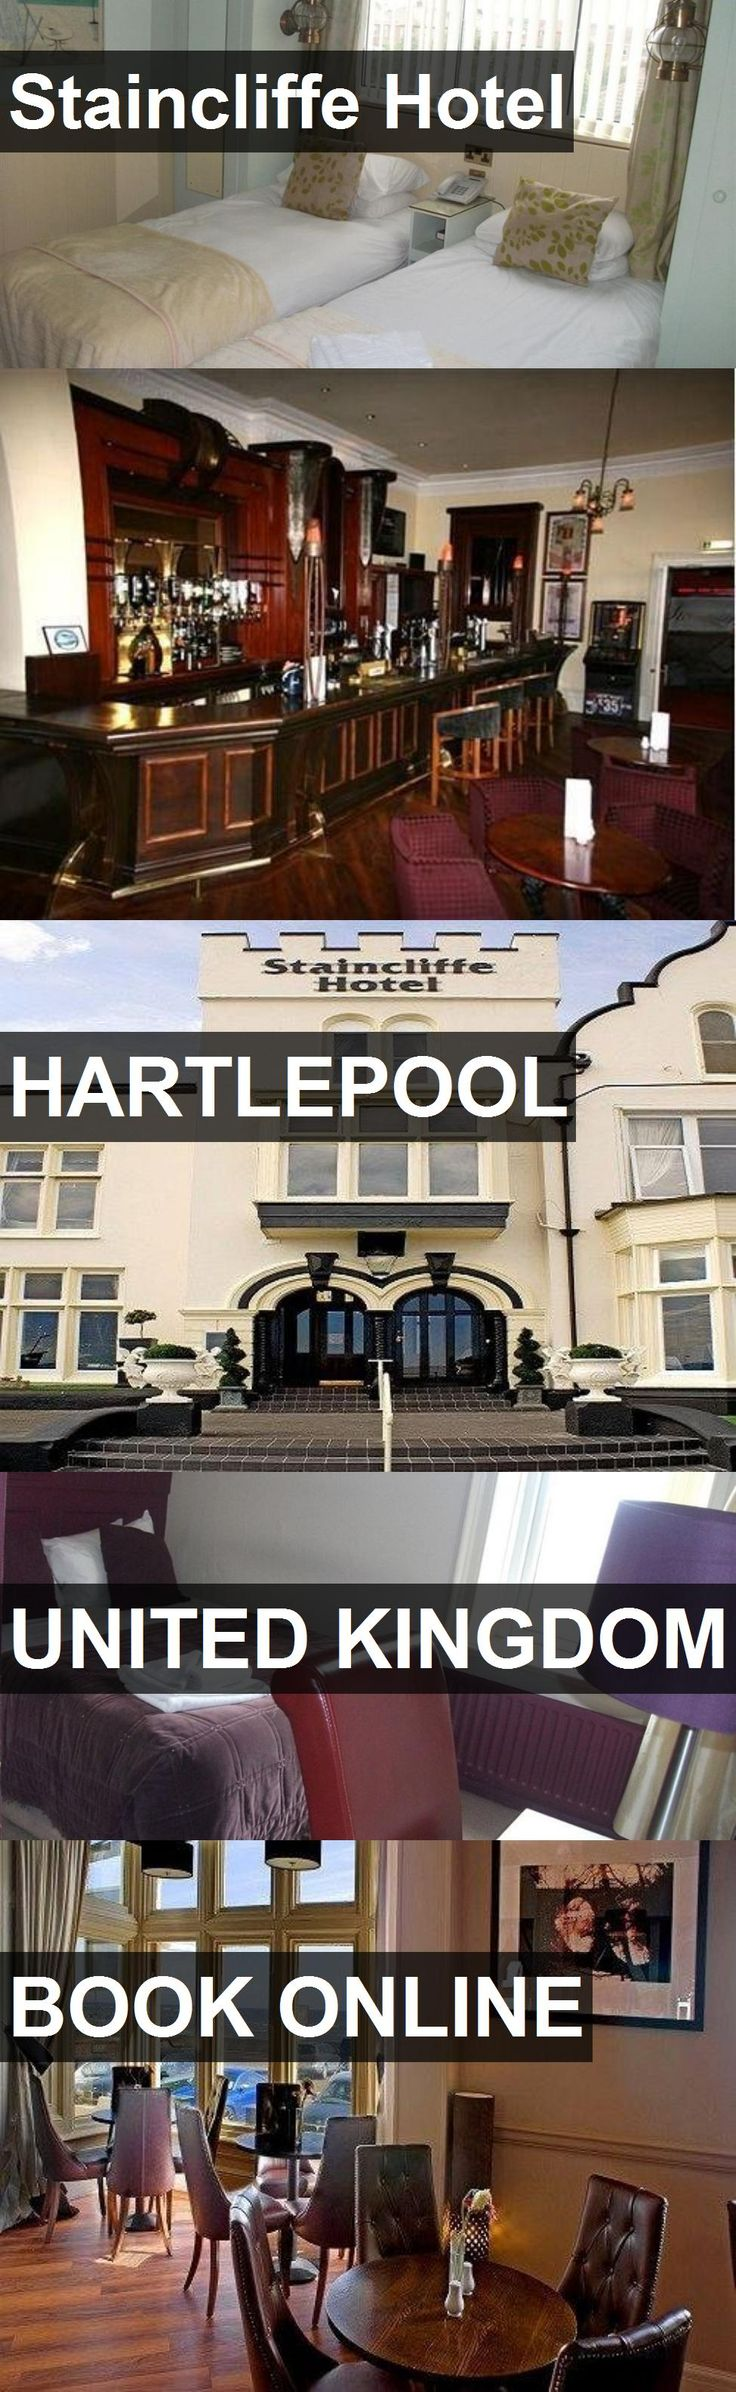 Hotel Staincliffe Hotel in Hartlepool, United Kingdom. For more information, photos, reviews and best prices please follow the link. #UnitedKingdom #Hartlepool #StaincliffeHotel #hotel #travel #vacation